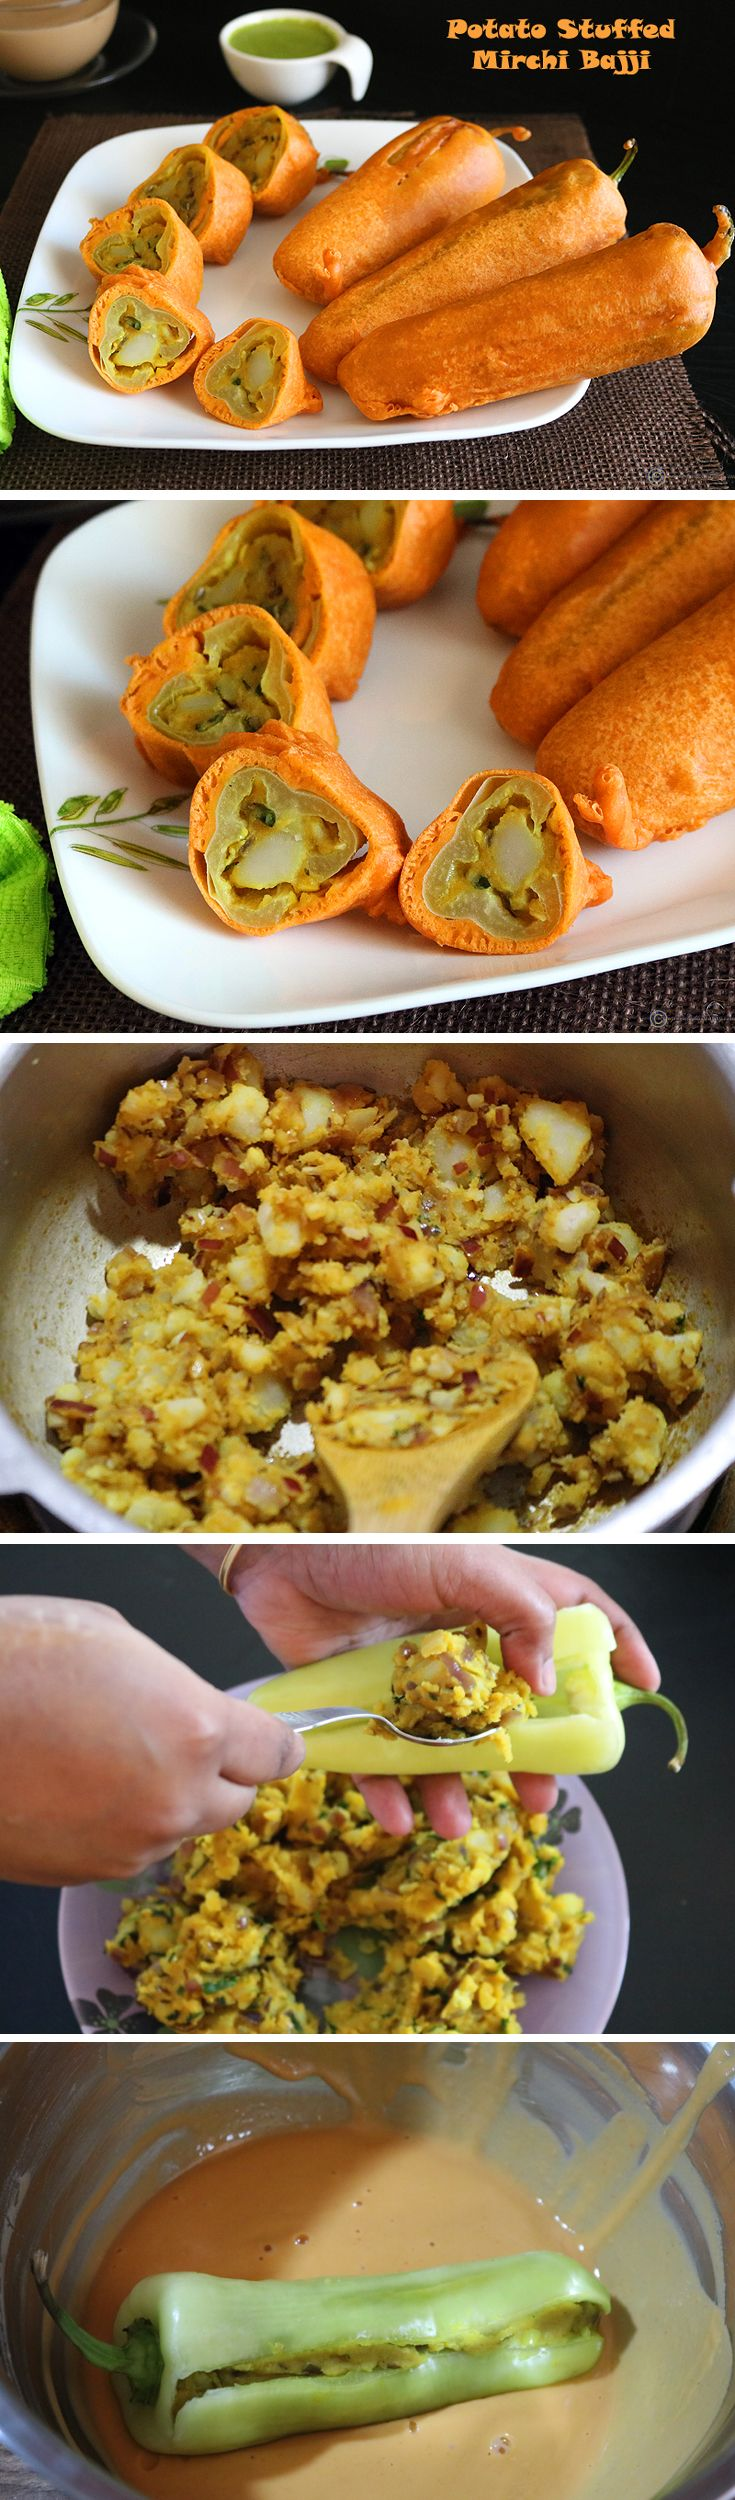 Potato Stuffed Mirchi Bajji | Milagai Bajji | Banana Pepper Fritters - A super delicious Indian snack perfect for a cool fall / winter evening. A yummy potato masala stuffed inside banana peppers, dip in a gram flour batter and deep fried until golden brown.